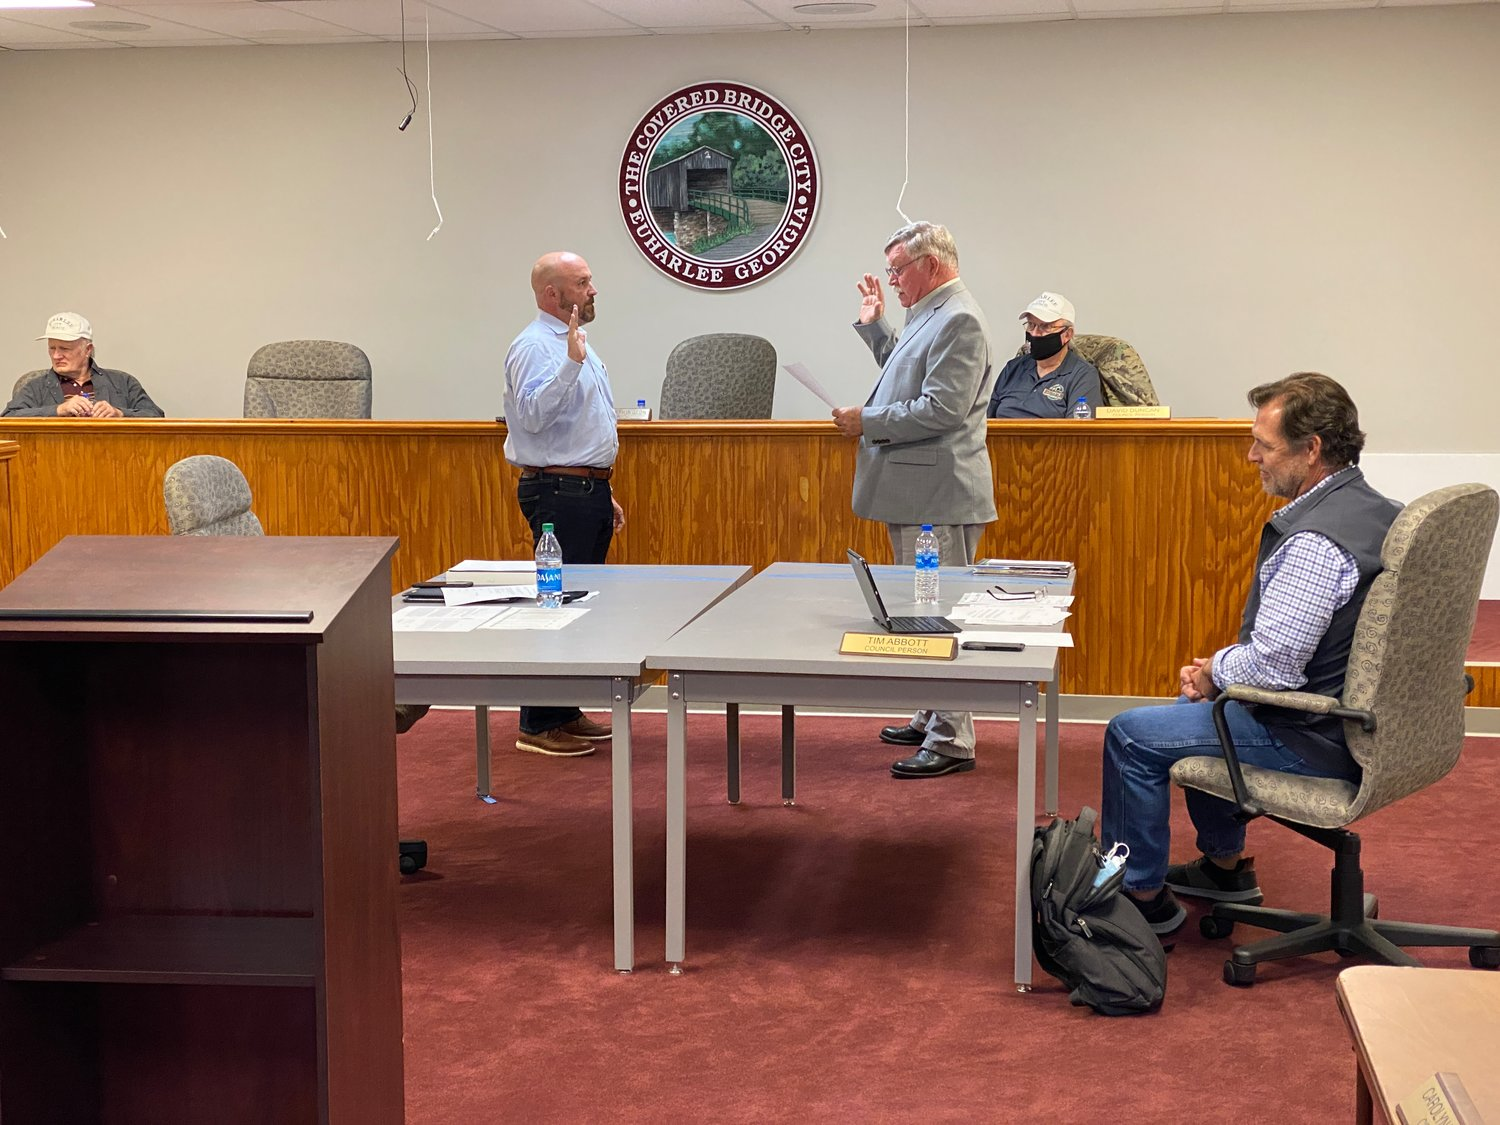 Greg Free, left, is sworn in as a city council member by Euharlee Mayor Steve Worthington at Tuesday evening's public meeting.